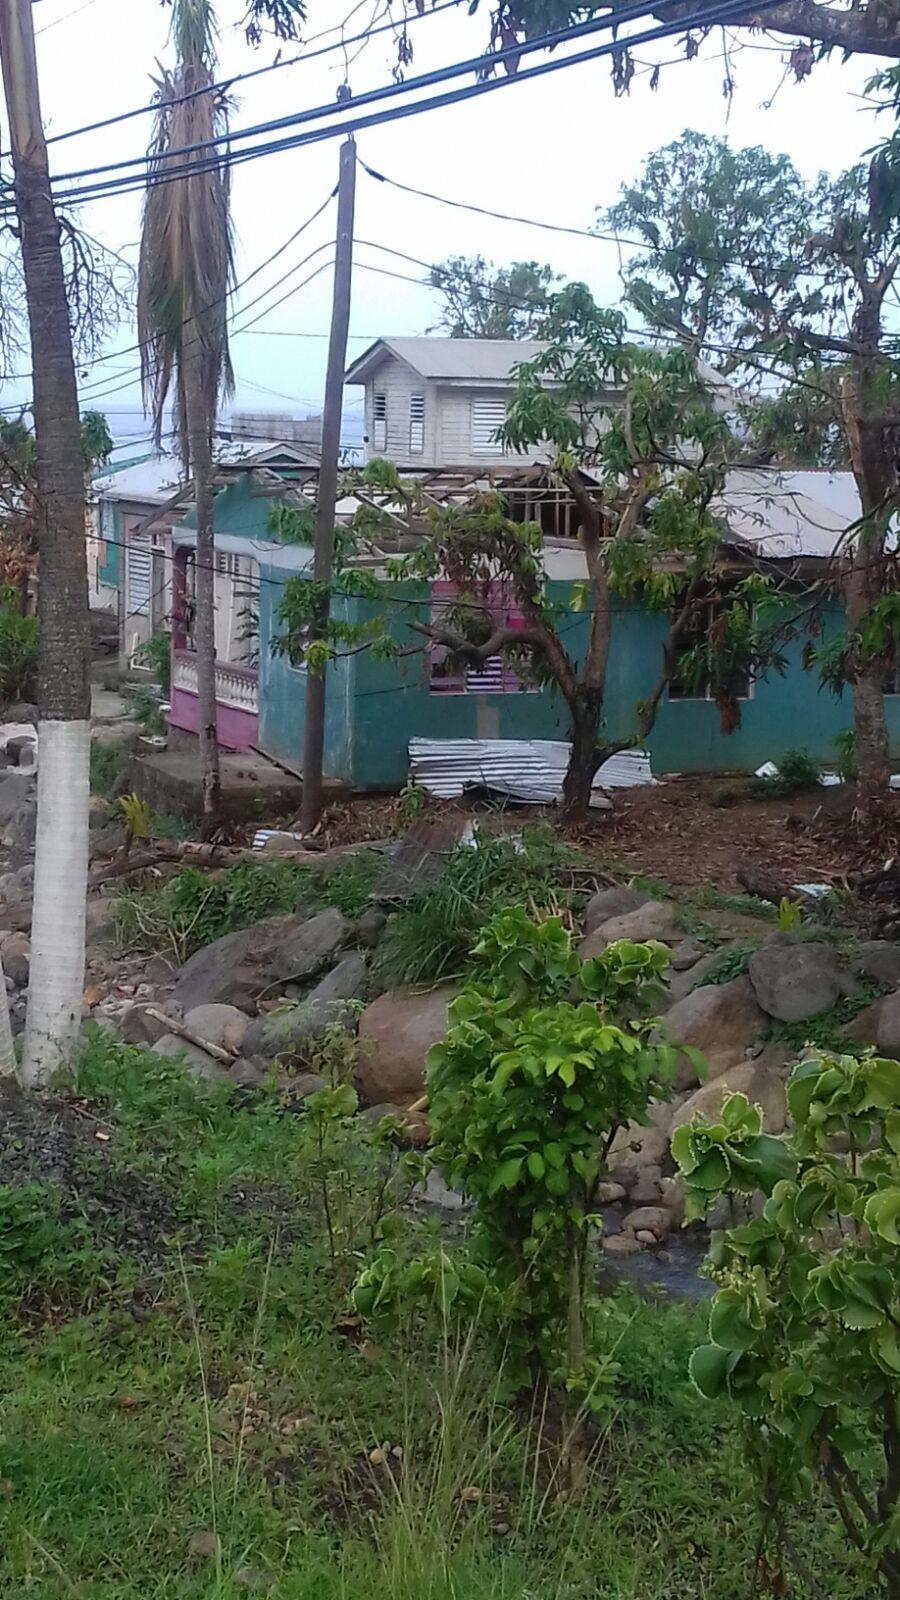 cover a home in dominica rotary club of portsmouth